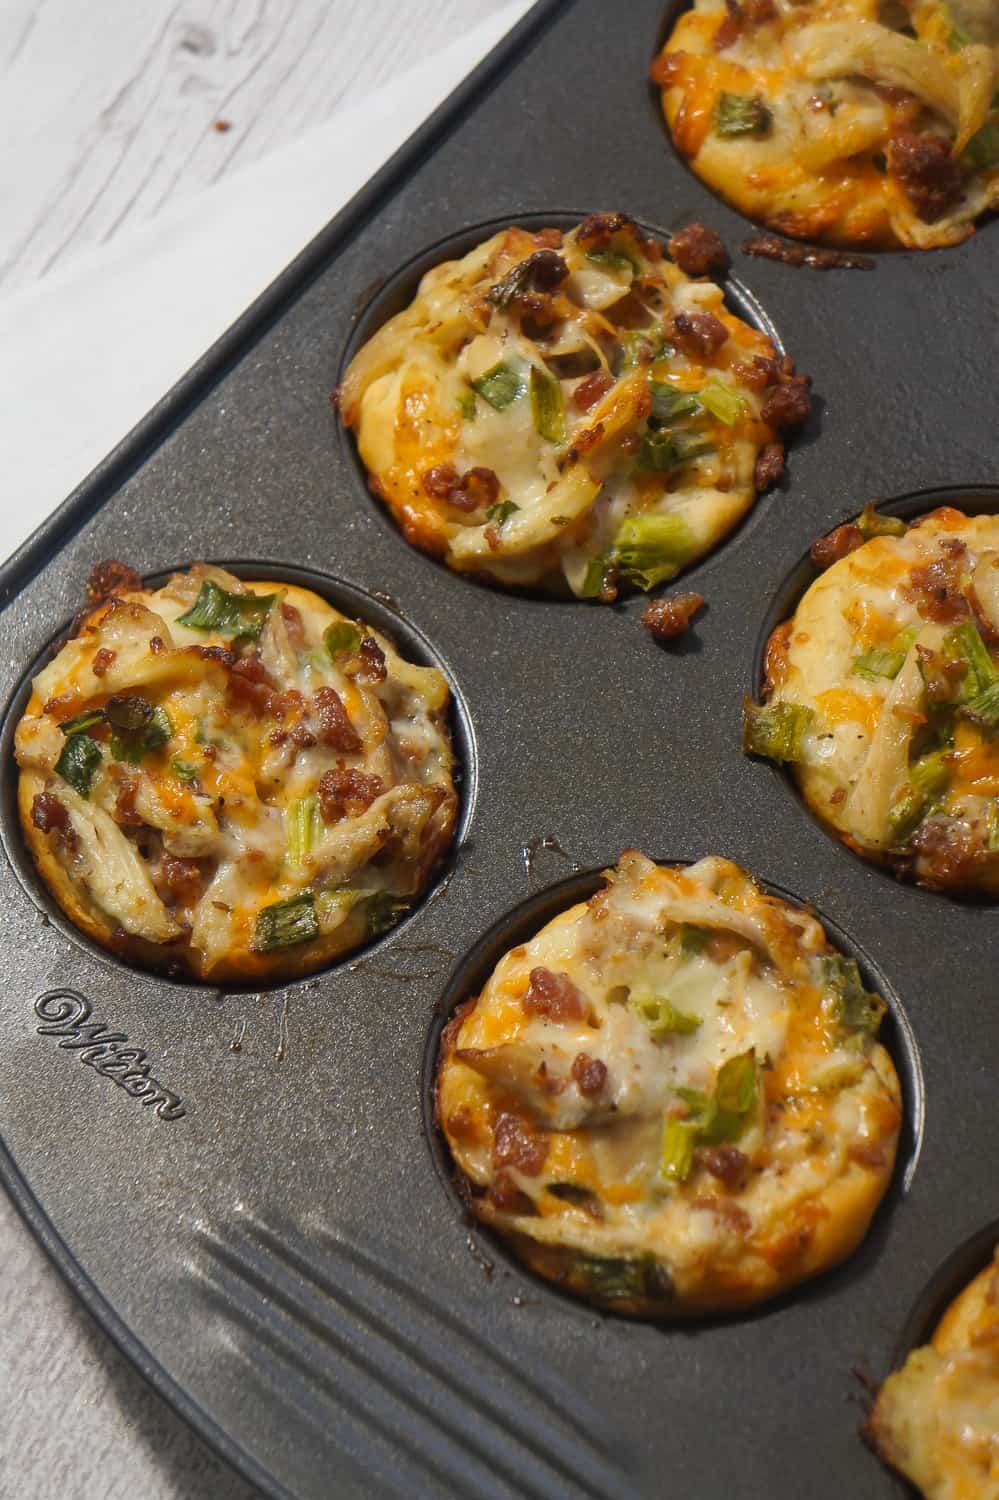 Chicken Bacon Ranch Biscuit Cups are a fun and easy party food. These biscuits loaded with rotisserie chicken, cheddar cheese and bacon are a delicious hand held snack.